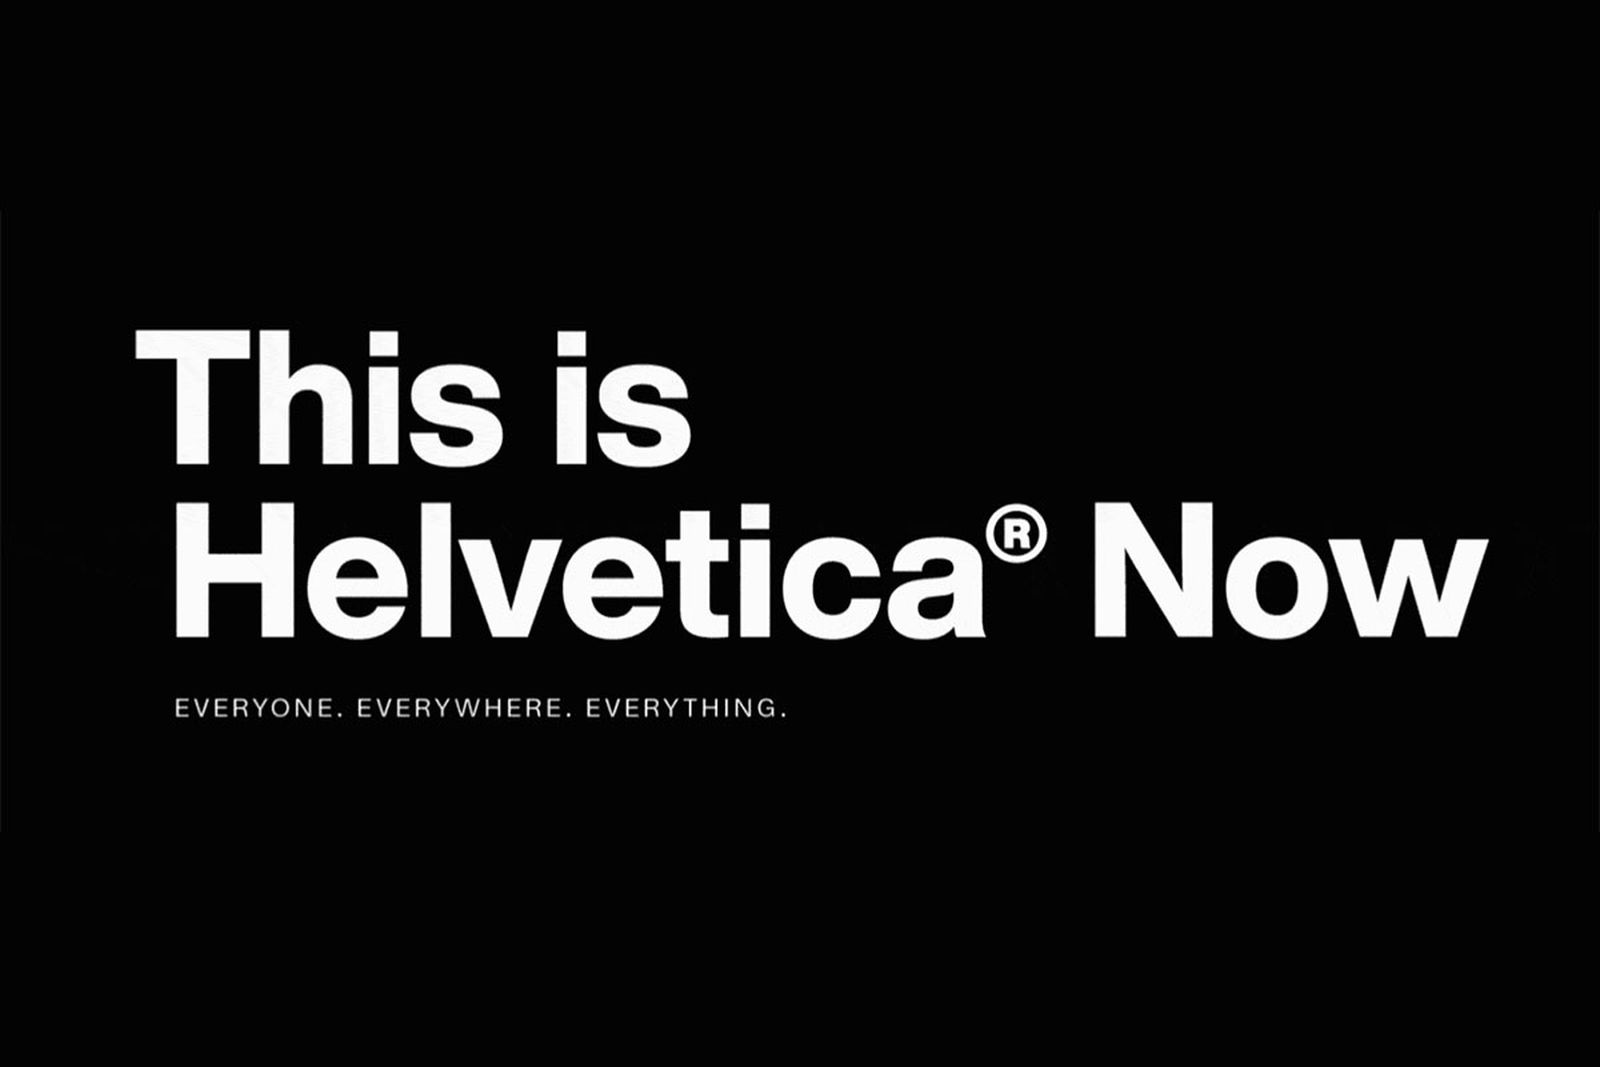 helvetica now new font fonts